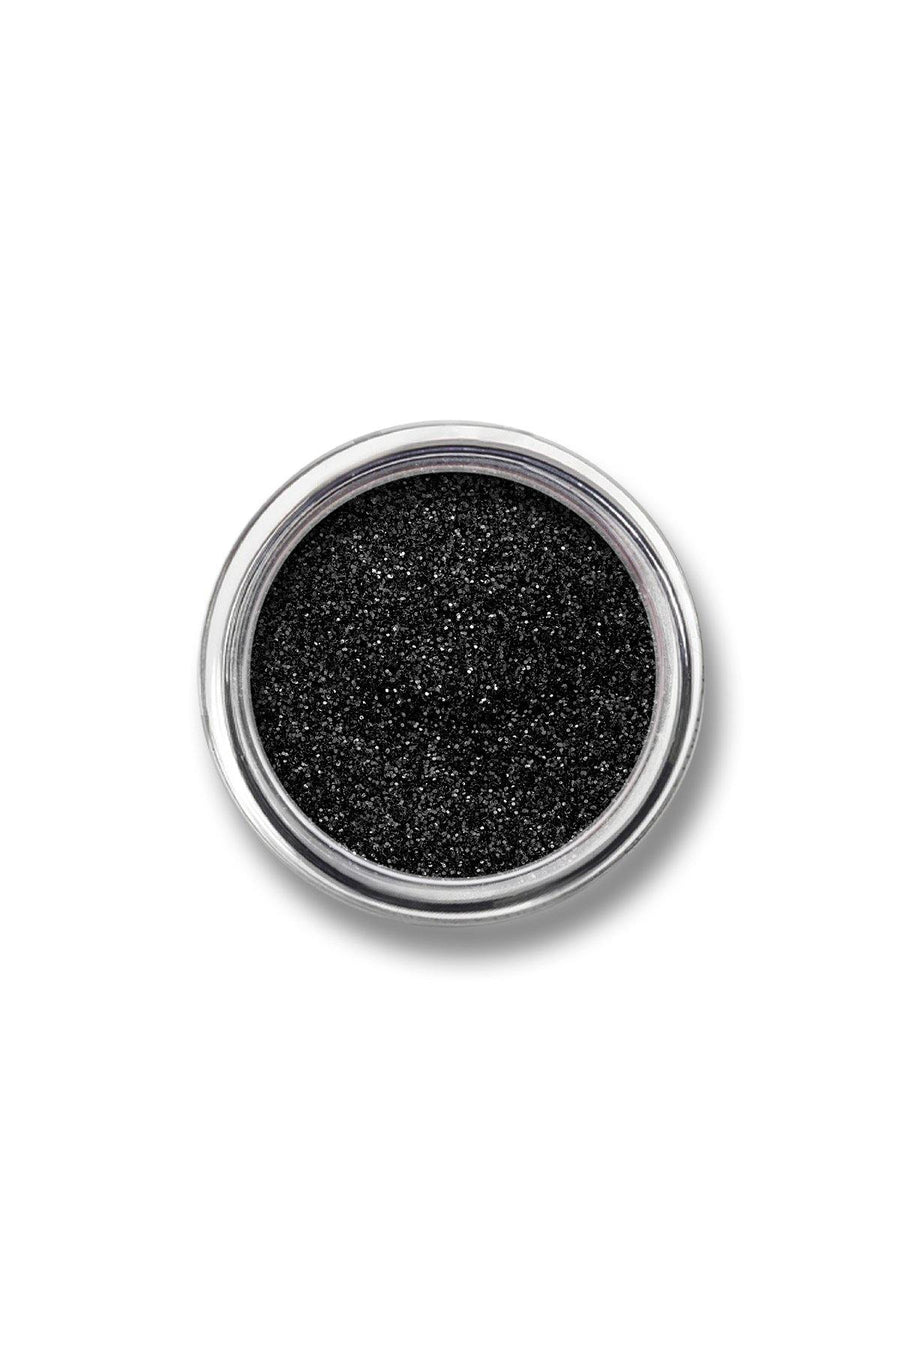 Glitter Powder #1 - Black